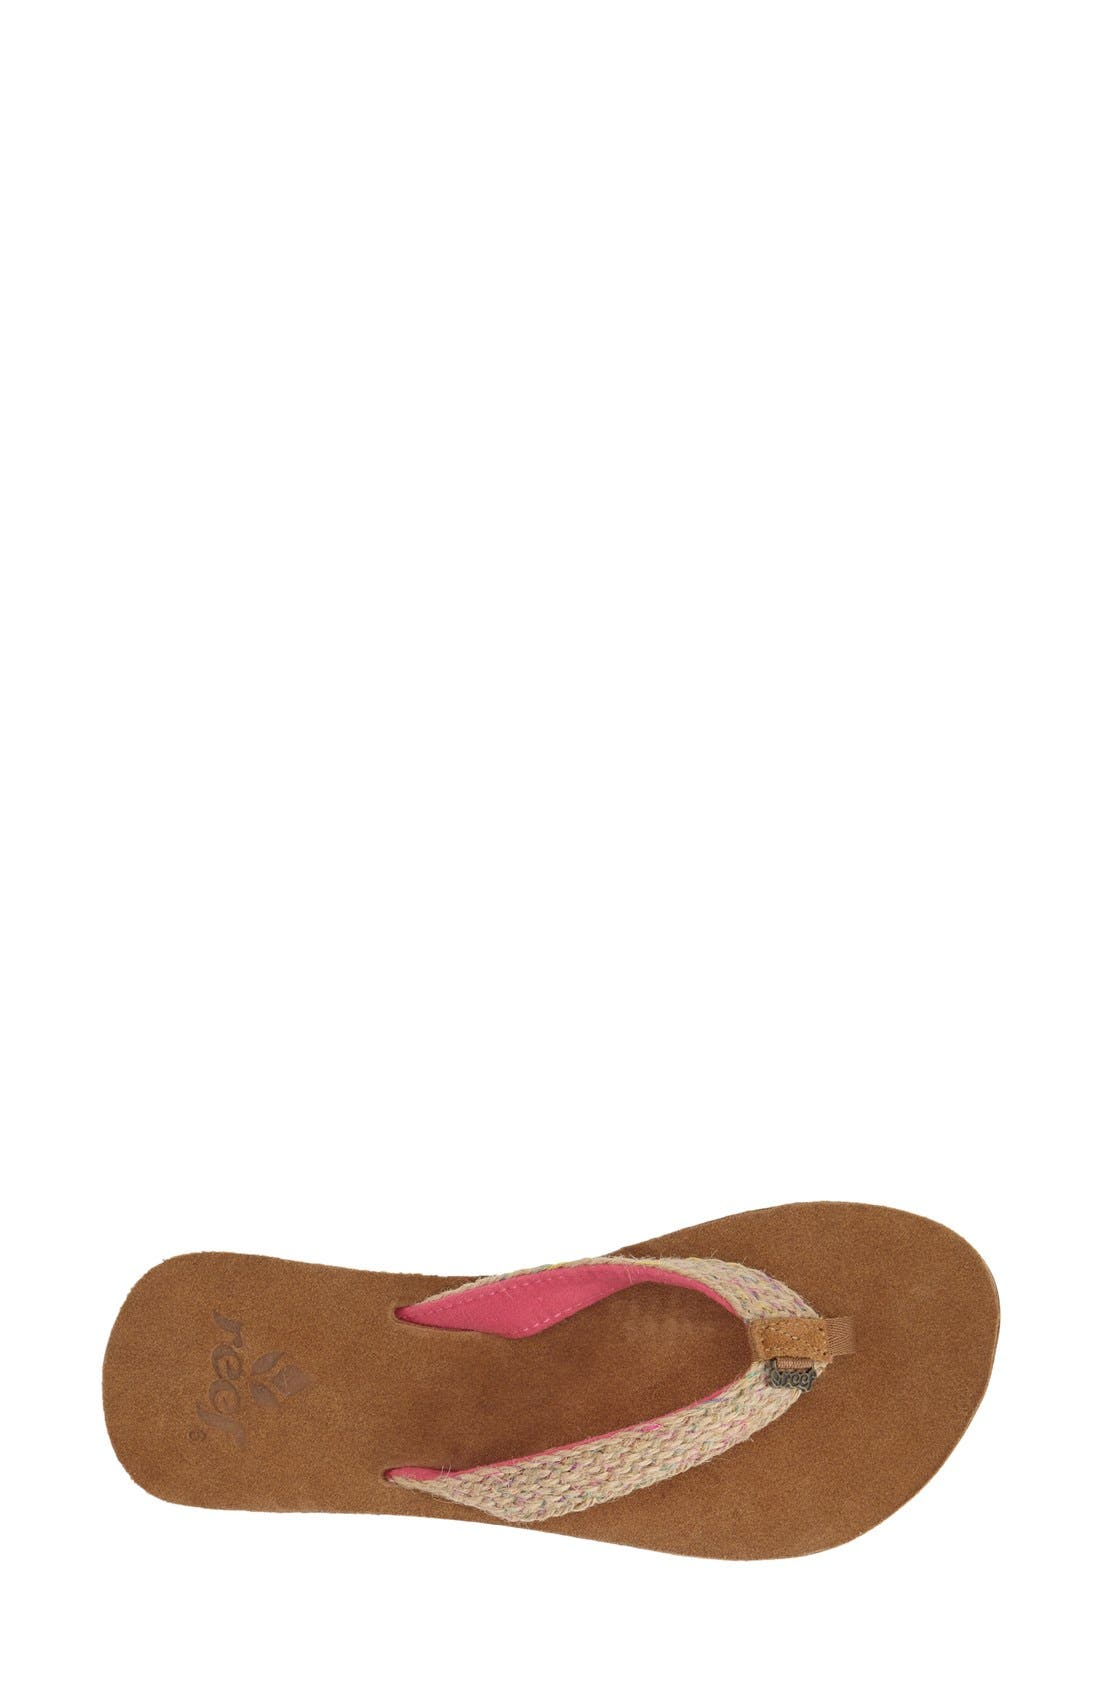 Alternate Image 3  - Reef 'Gypsyhope' Flip Flop (Women)